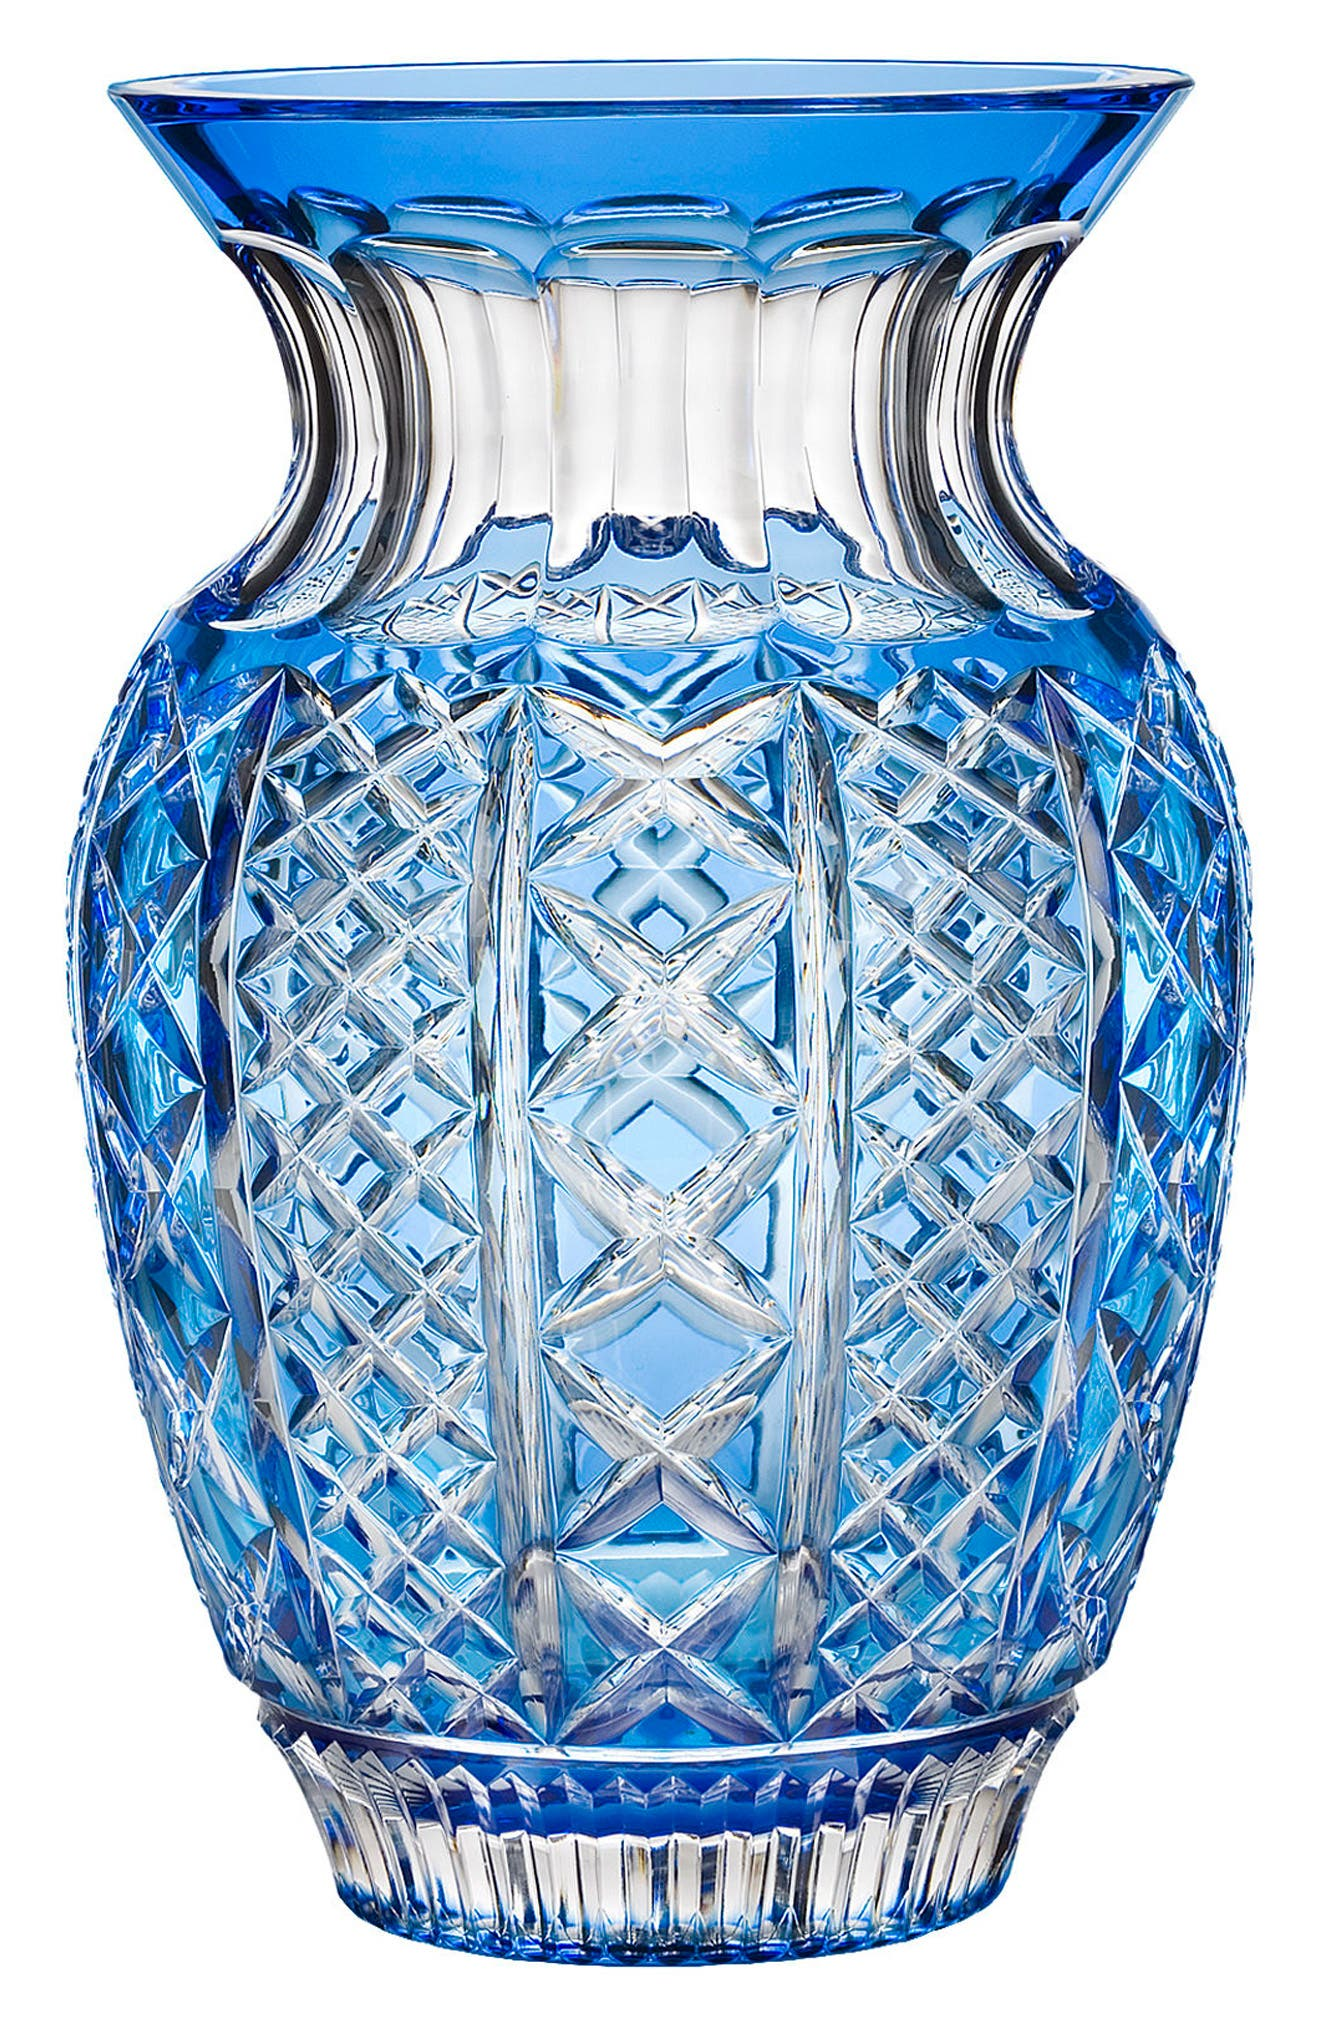 Fleurology Jeff Leatham Molly Blue Bouquet Vase,                             Main thumbnail 1, color,                             Crystal